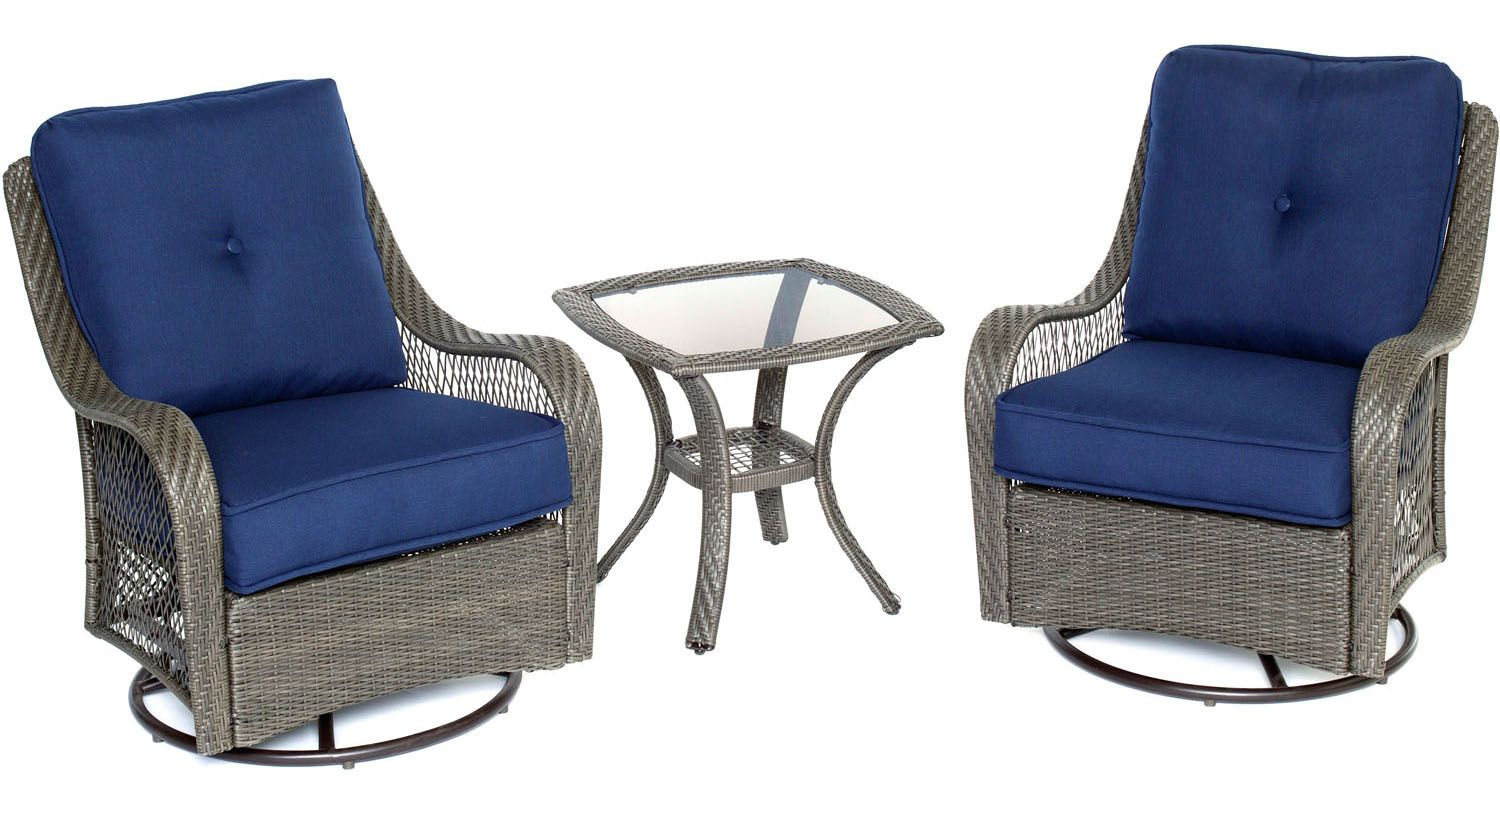 Hanover orleans 3 piece patio set orleans3pcsw g nvy for Outdoor furniture big w